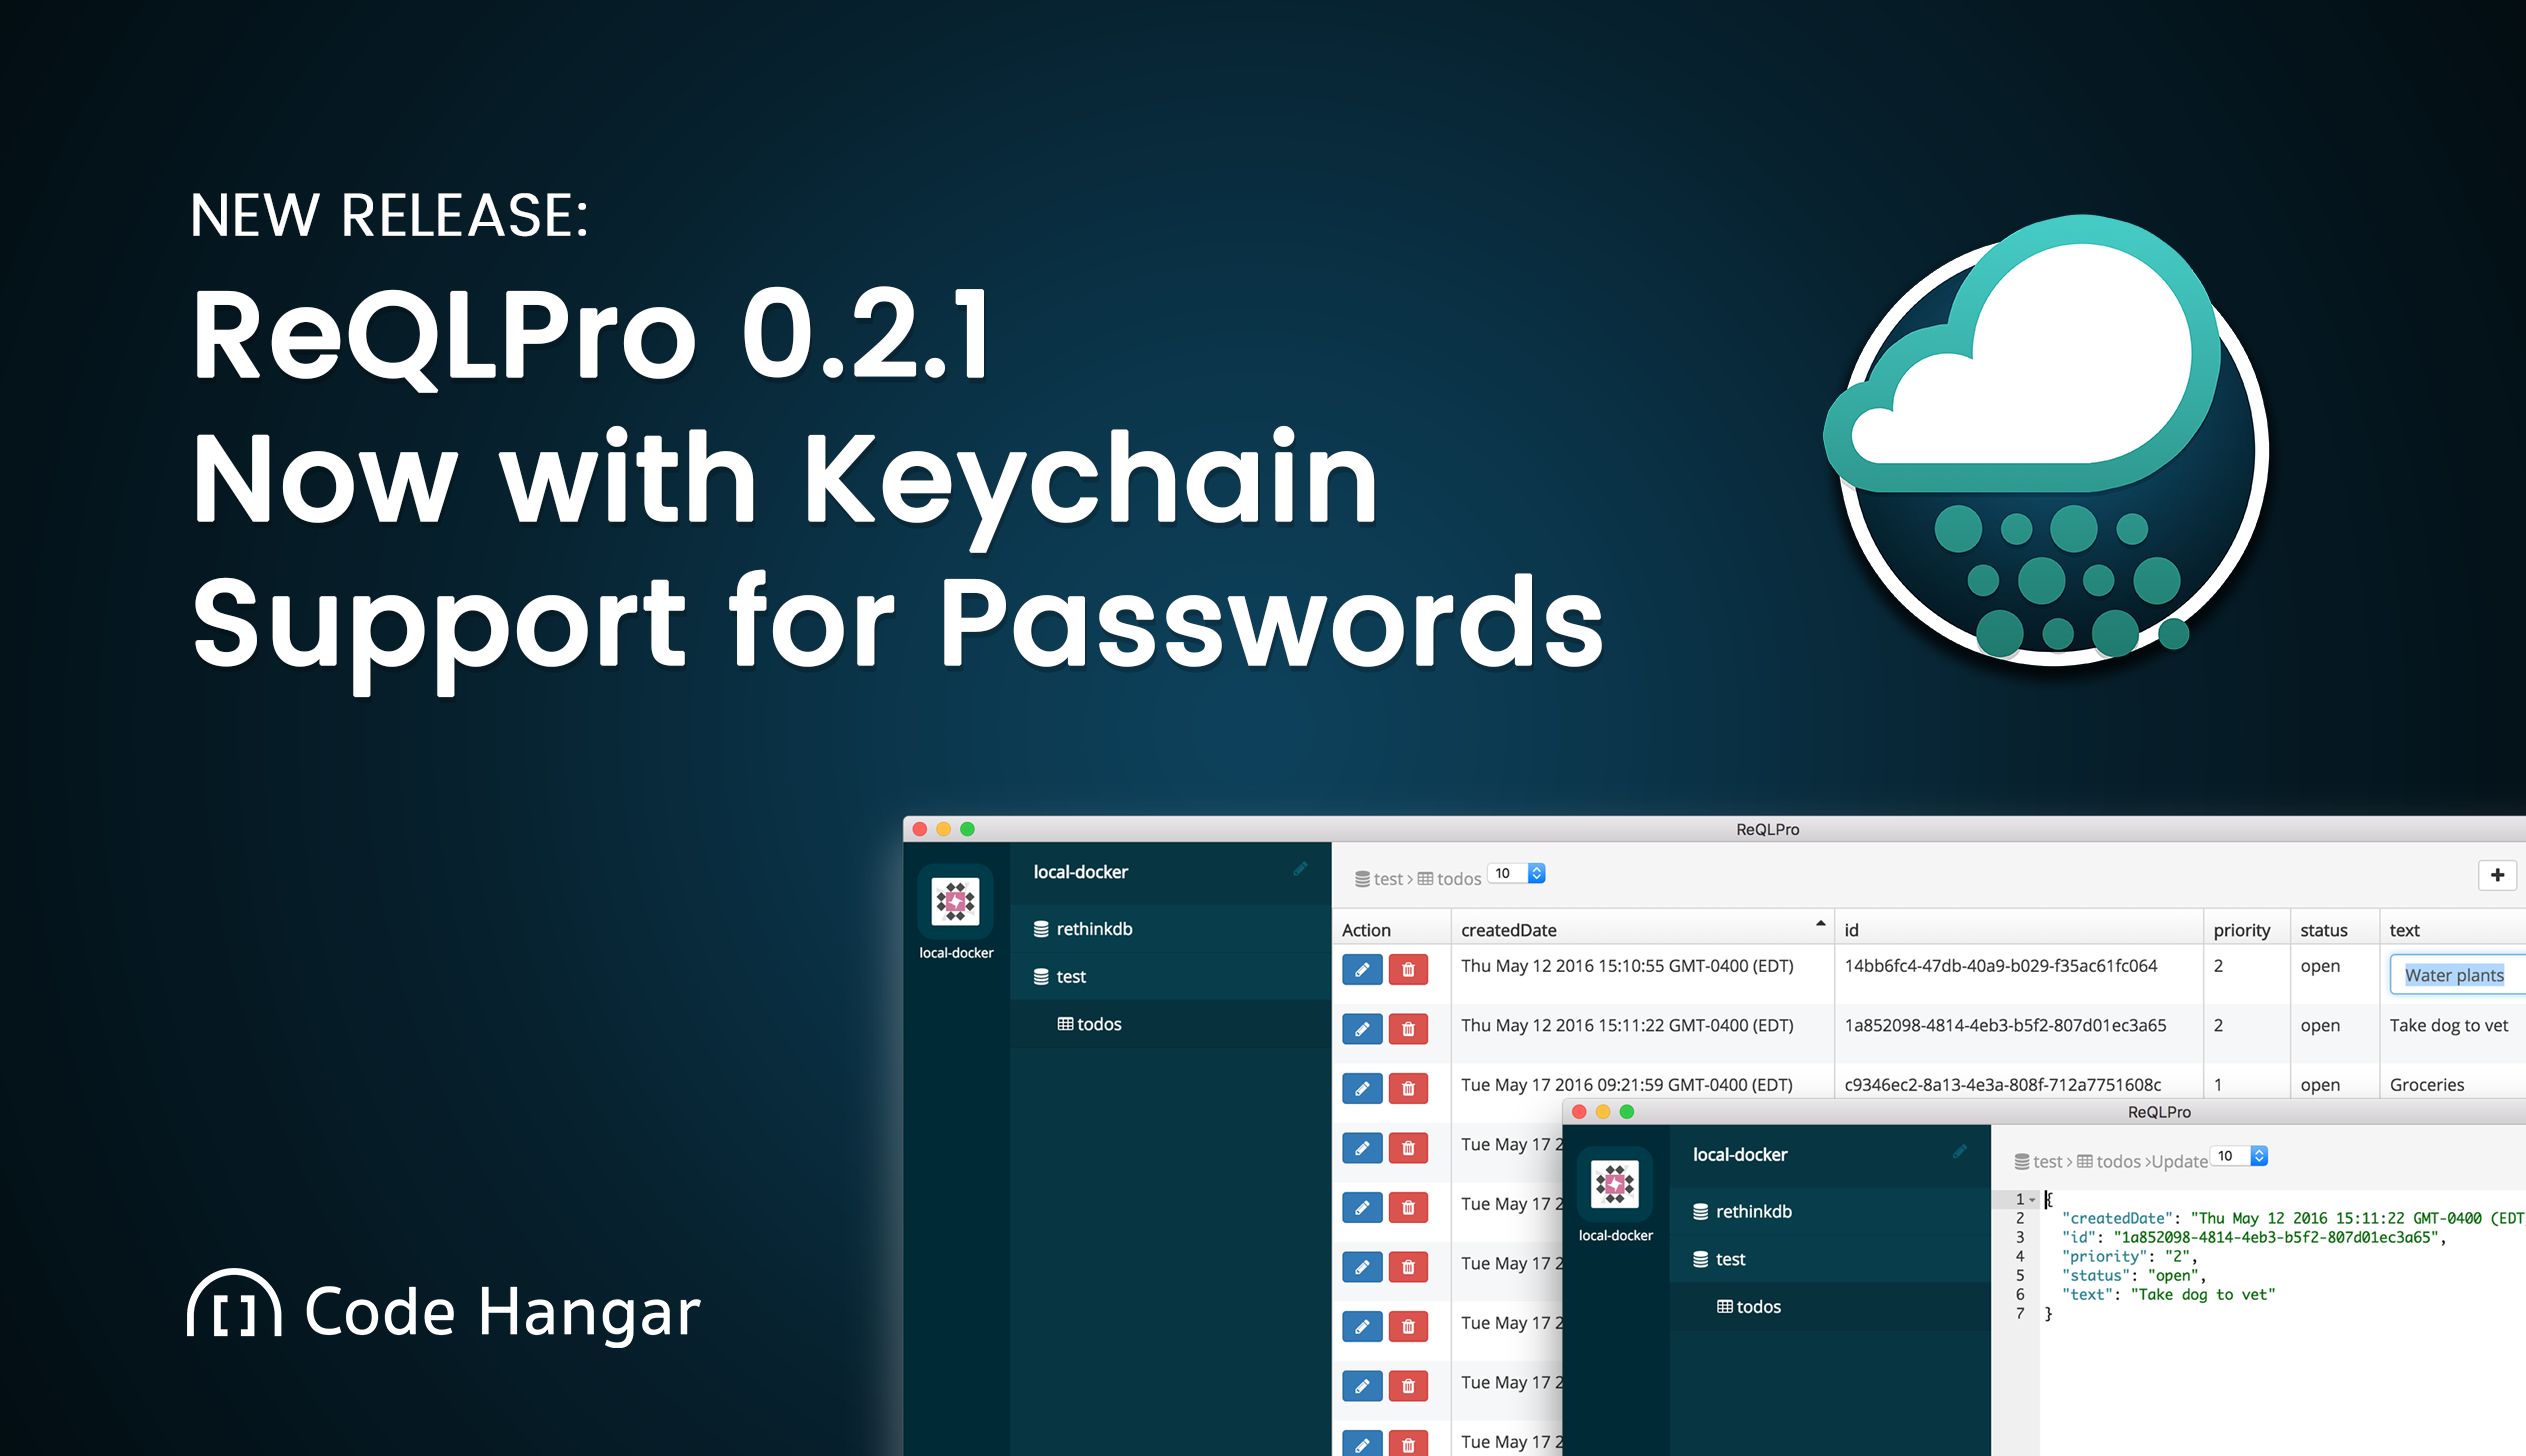 ReQLPro 0.2.1 Release Notes - Now with Keychain Support for Passwords